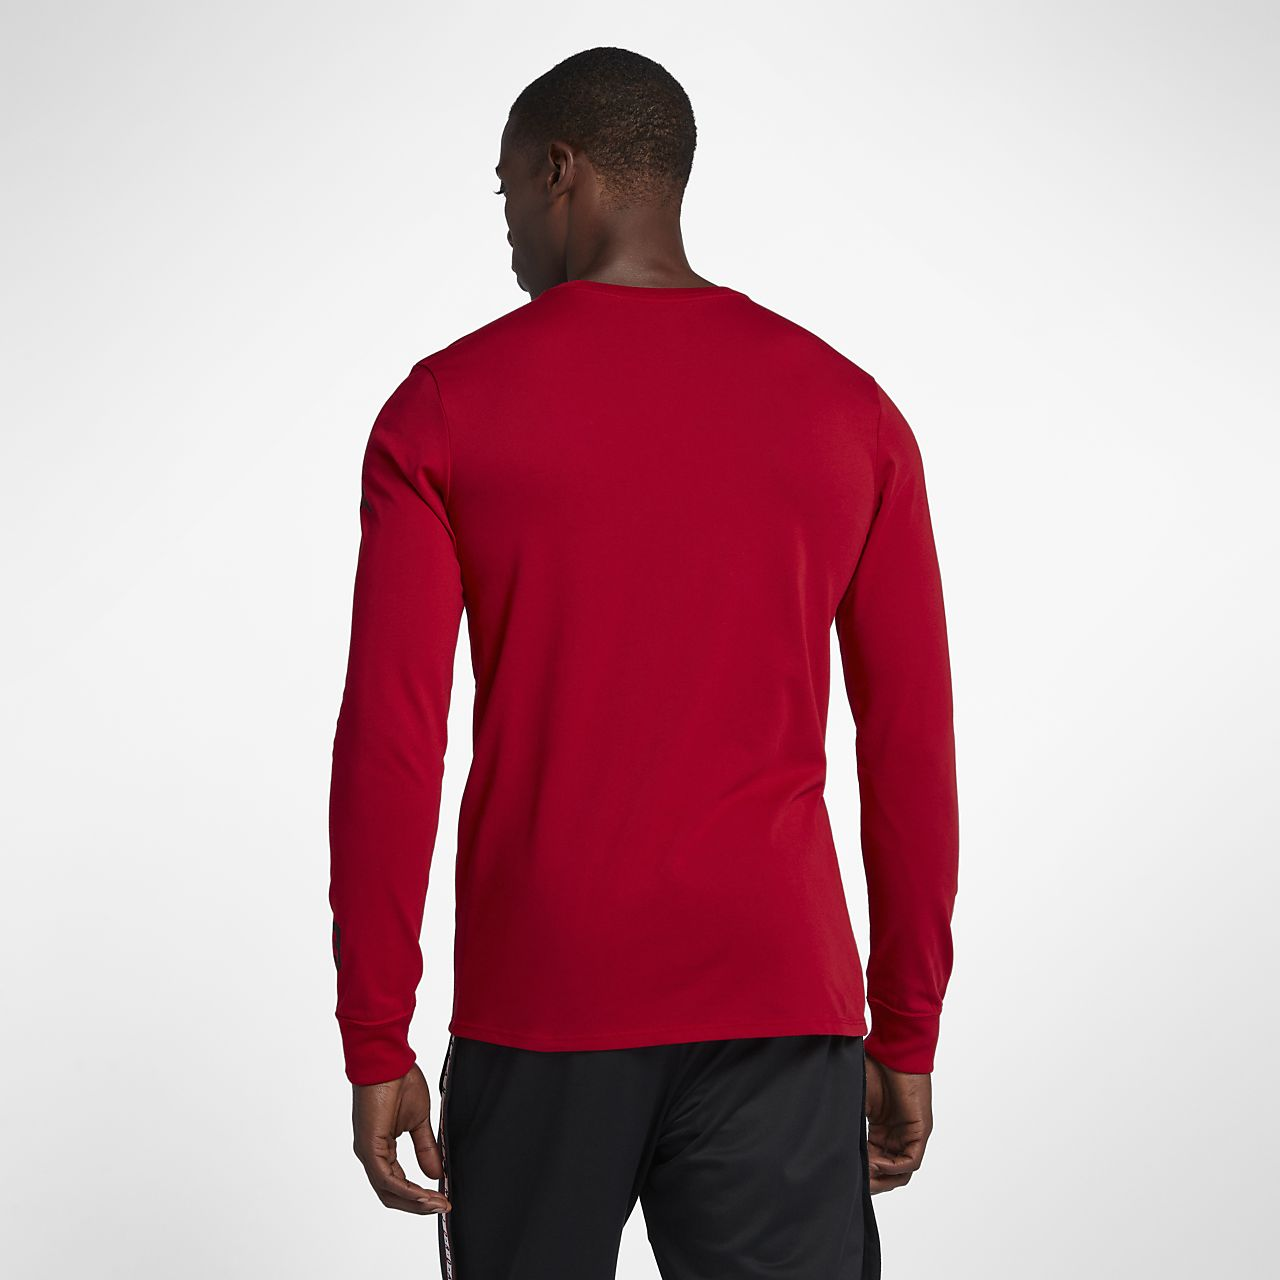 9ada5a3ee0d0e0 Jordan HO 1 Men s Long-Sleeve Basketball T-Shirt. Nike.com